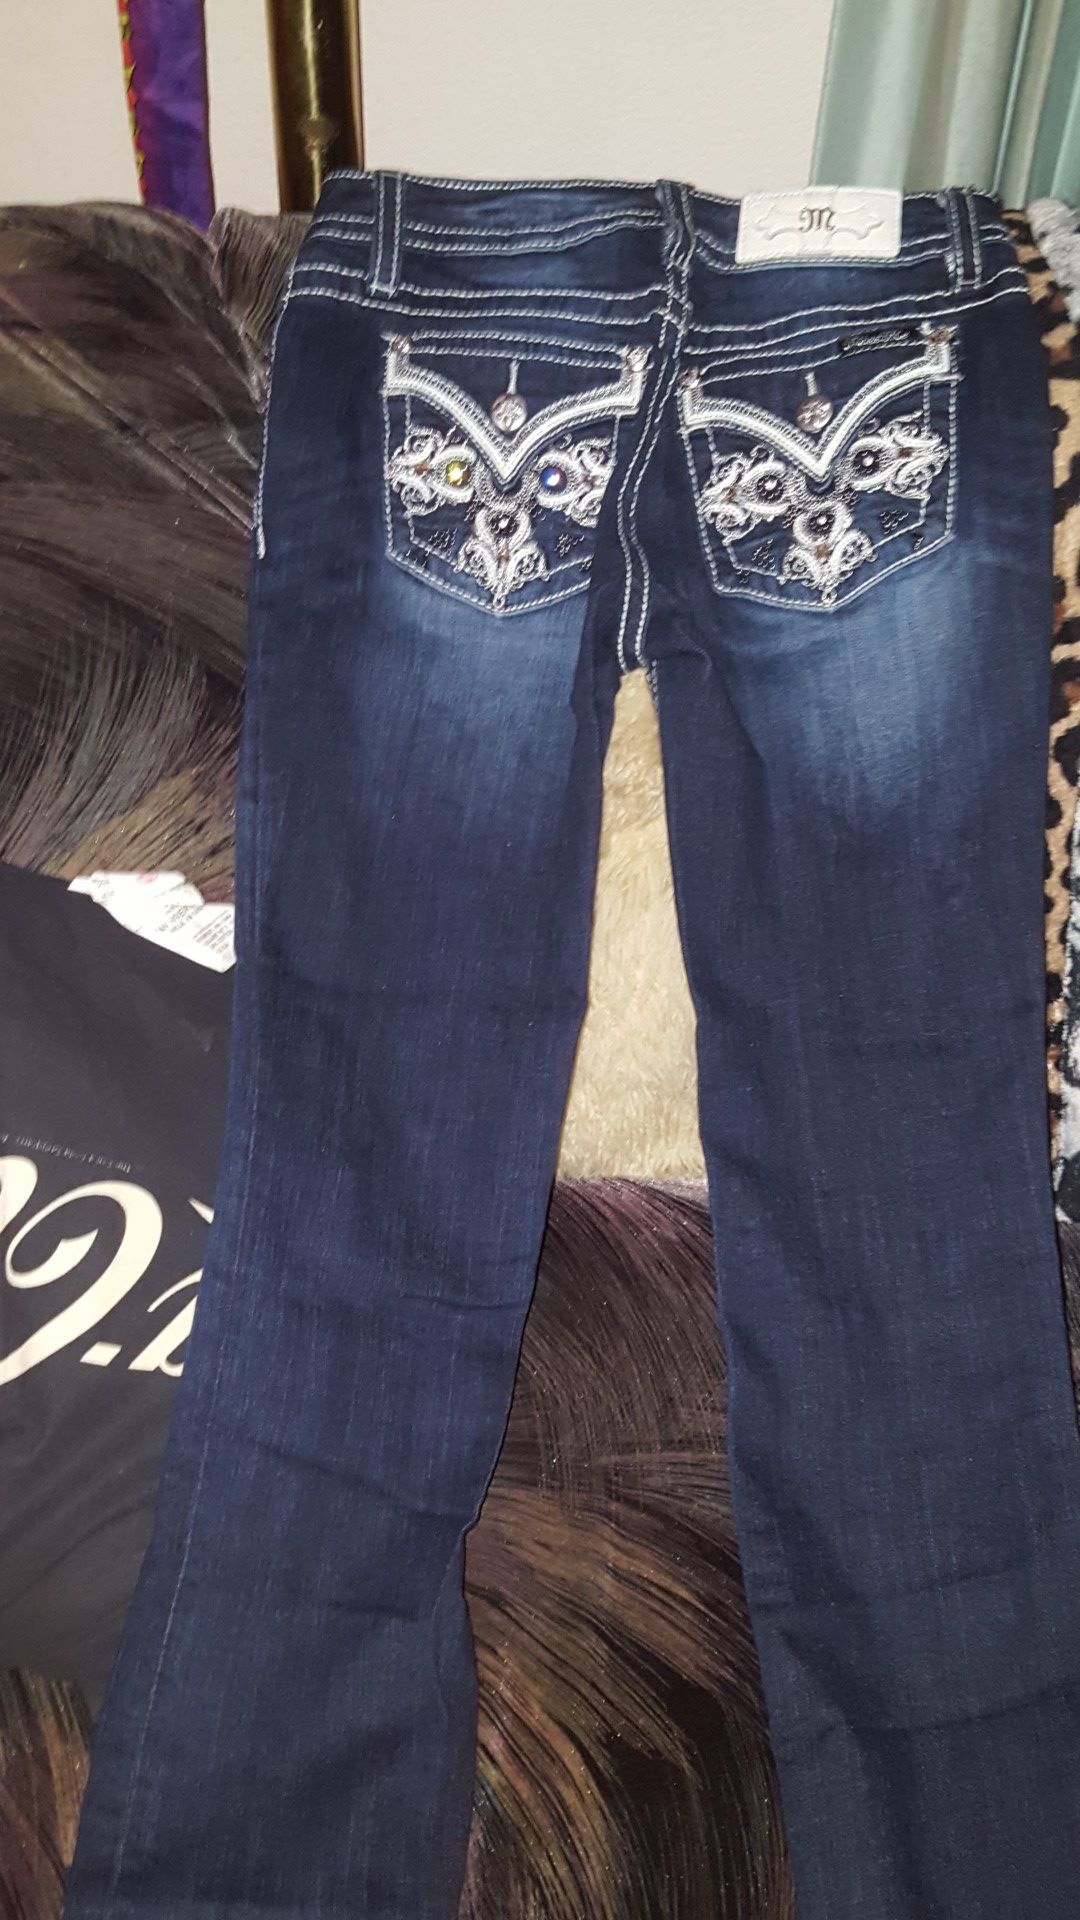 New never worn miss me jeans